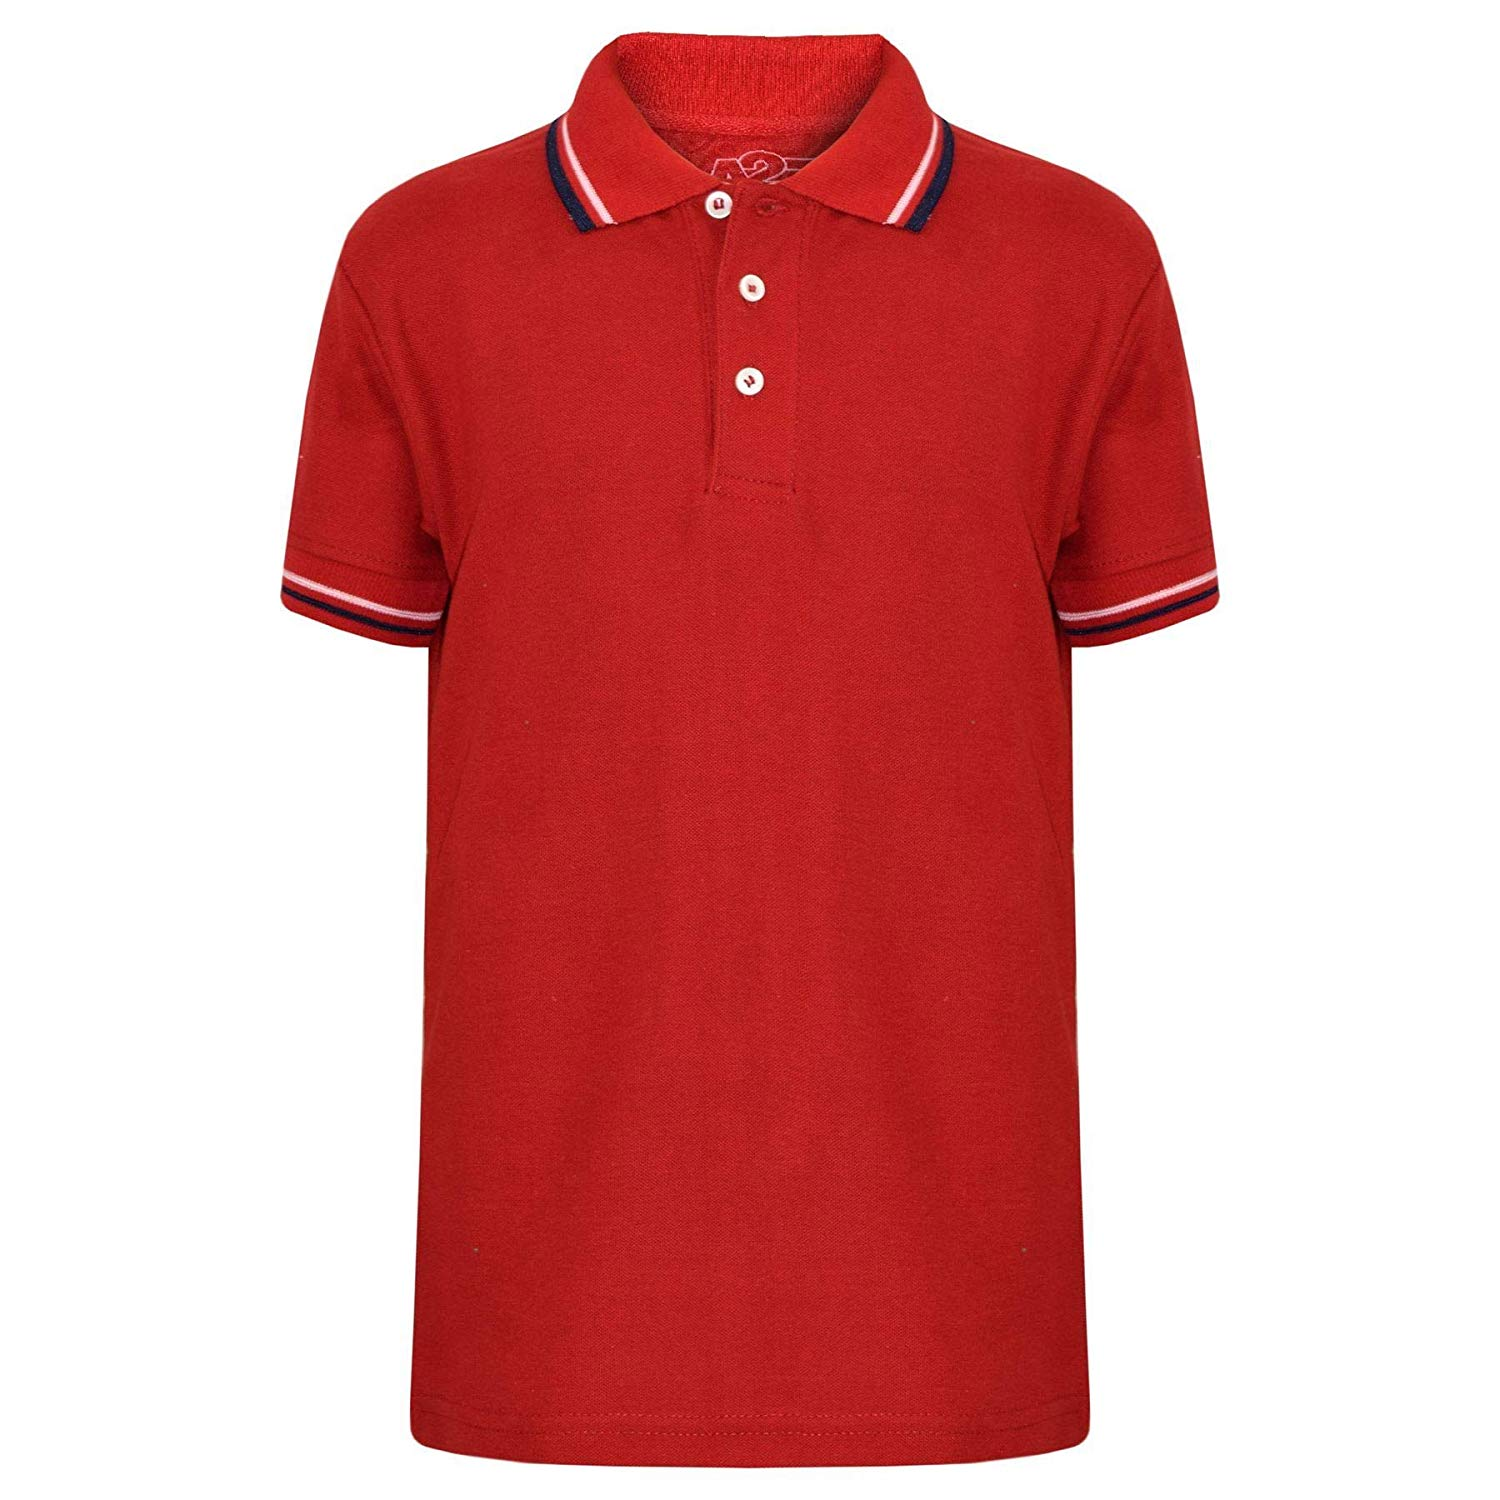 Cheap Girls Red School Polo Shirts Find Girls Red School Polo